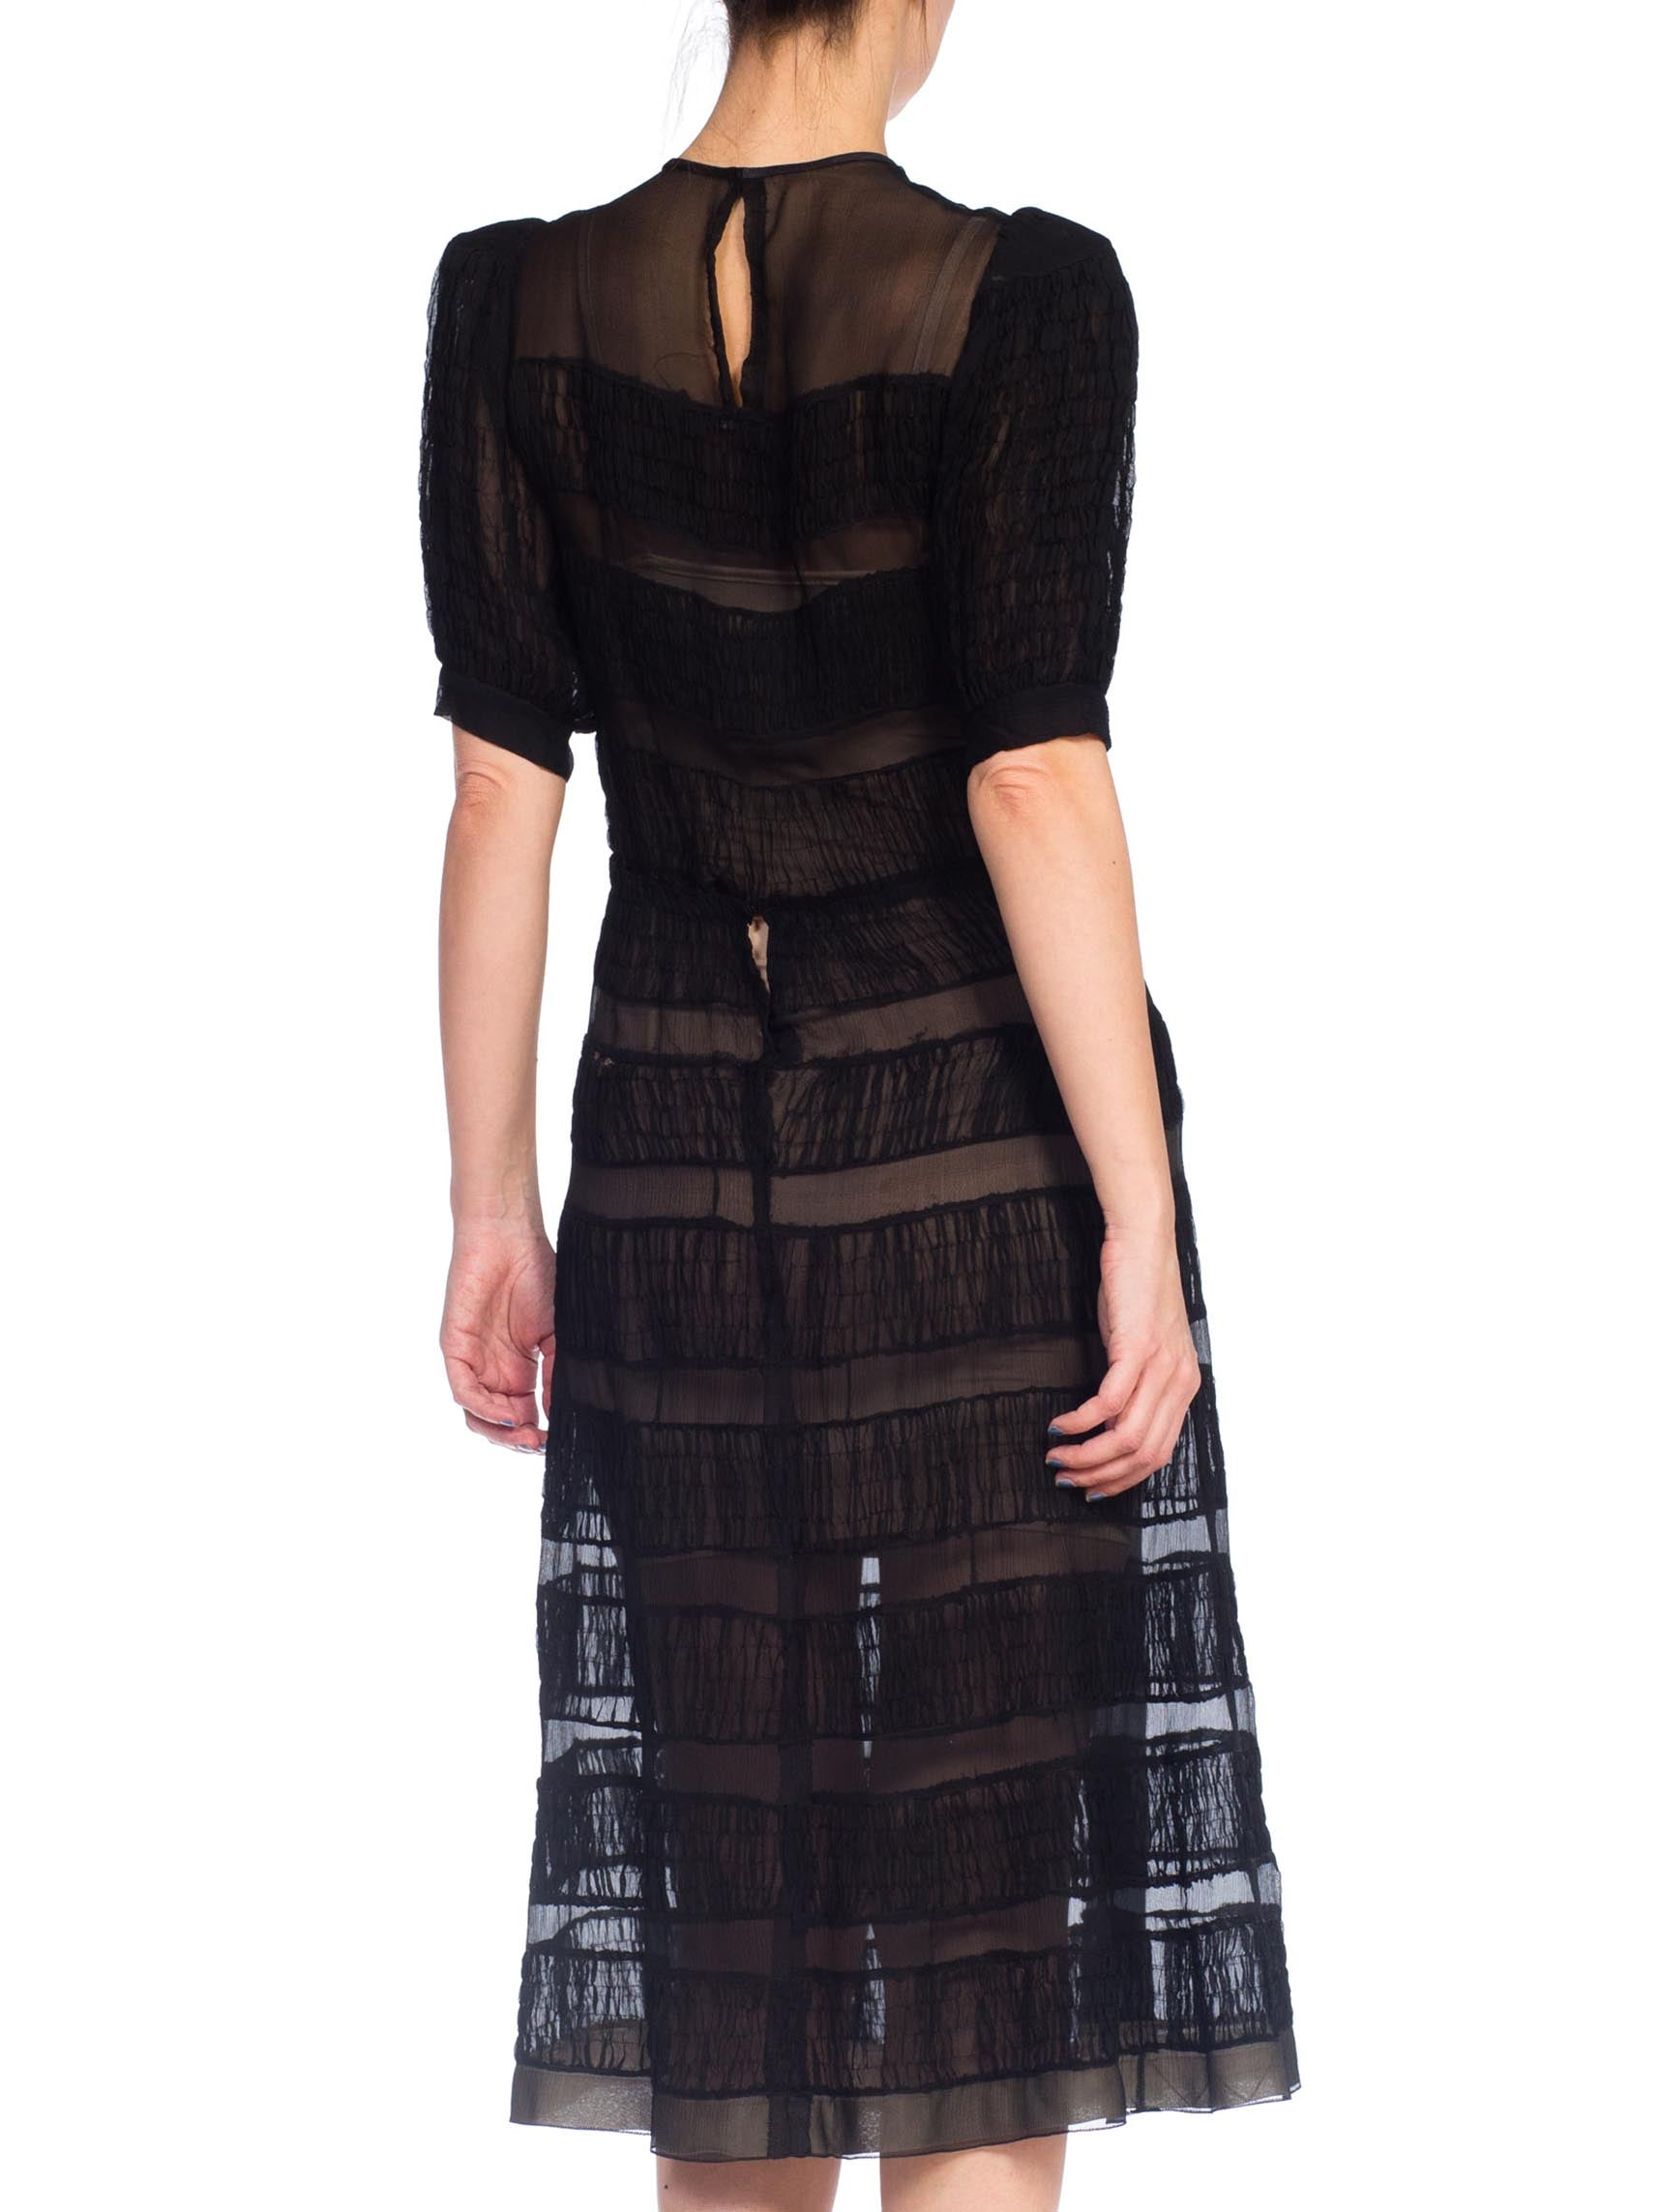 1930S  Black Sheer Silk Chiffon Dress With Couture Hand Shirring From Paris